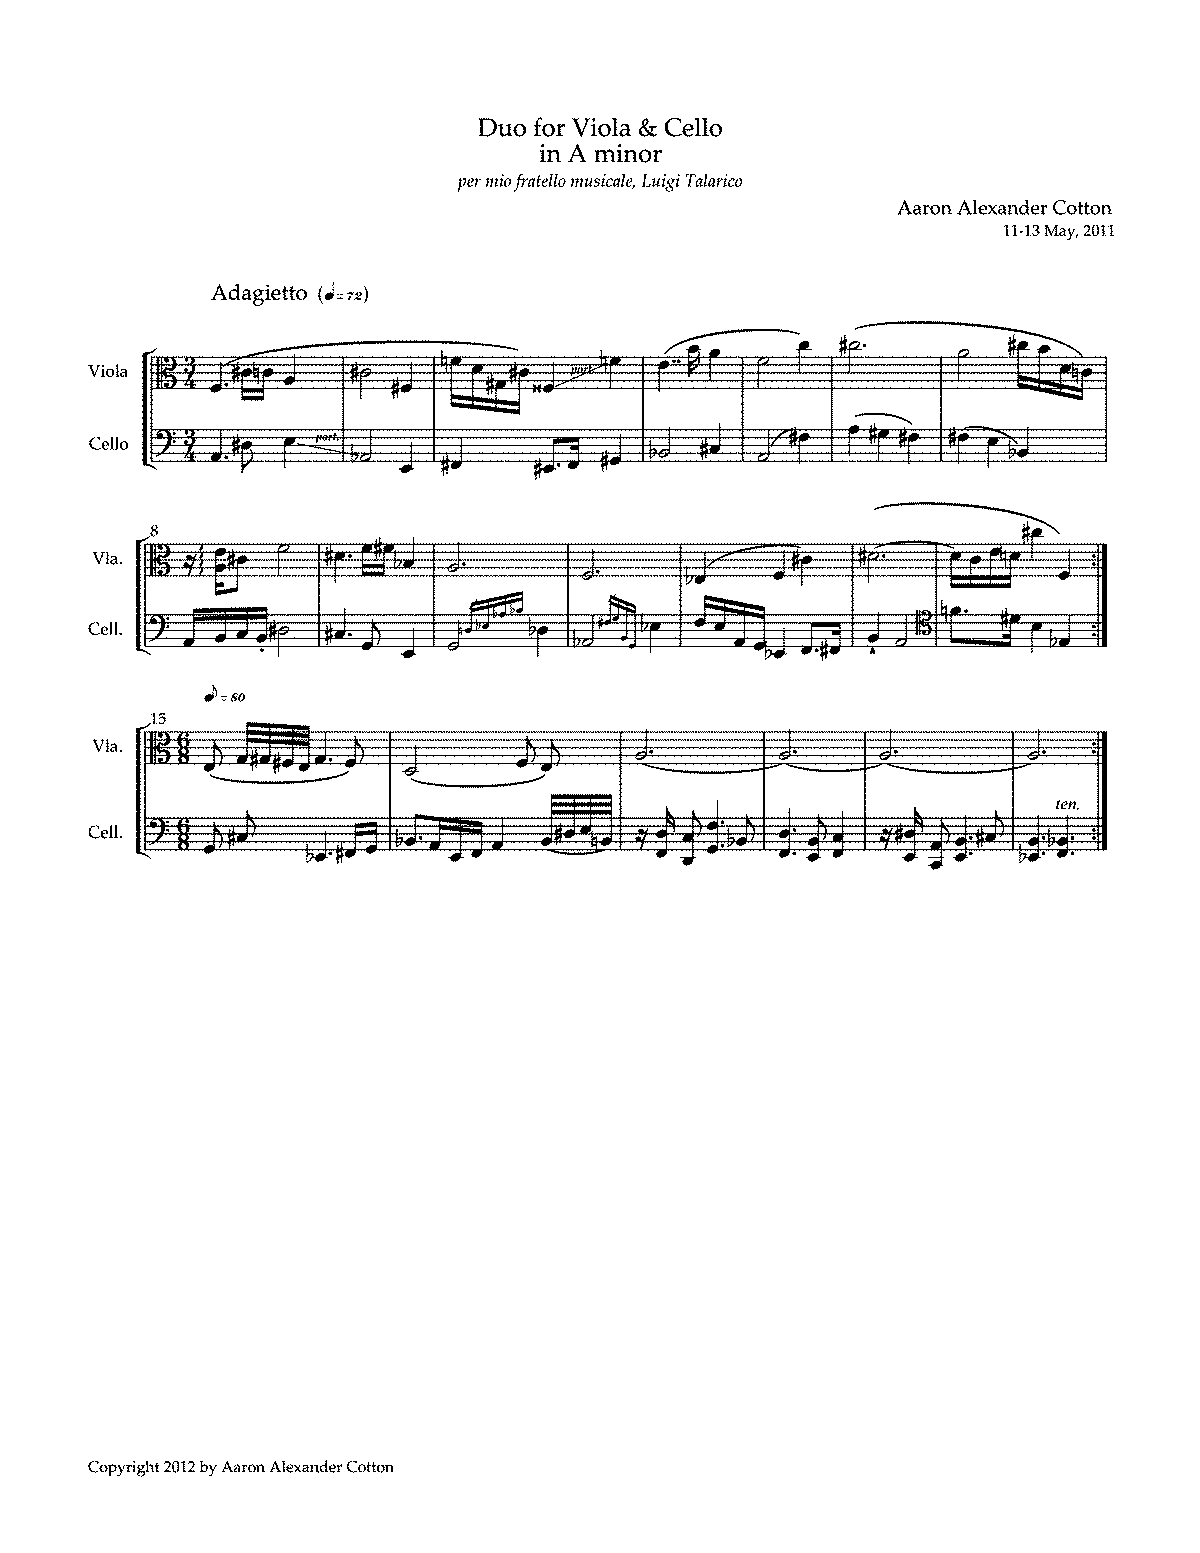 PMLP362348-Duo for Viola & Cello in A minor by Aaron Alexander Cotton.pdf